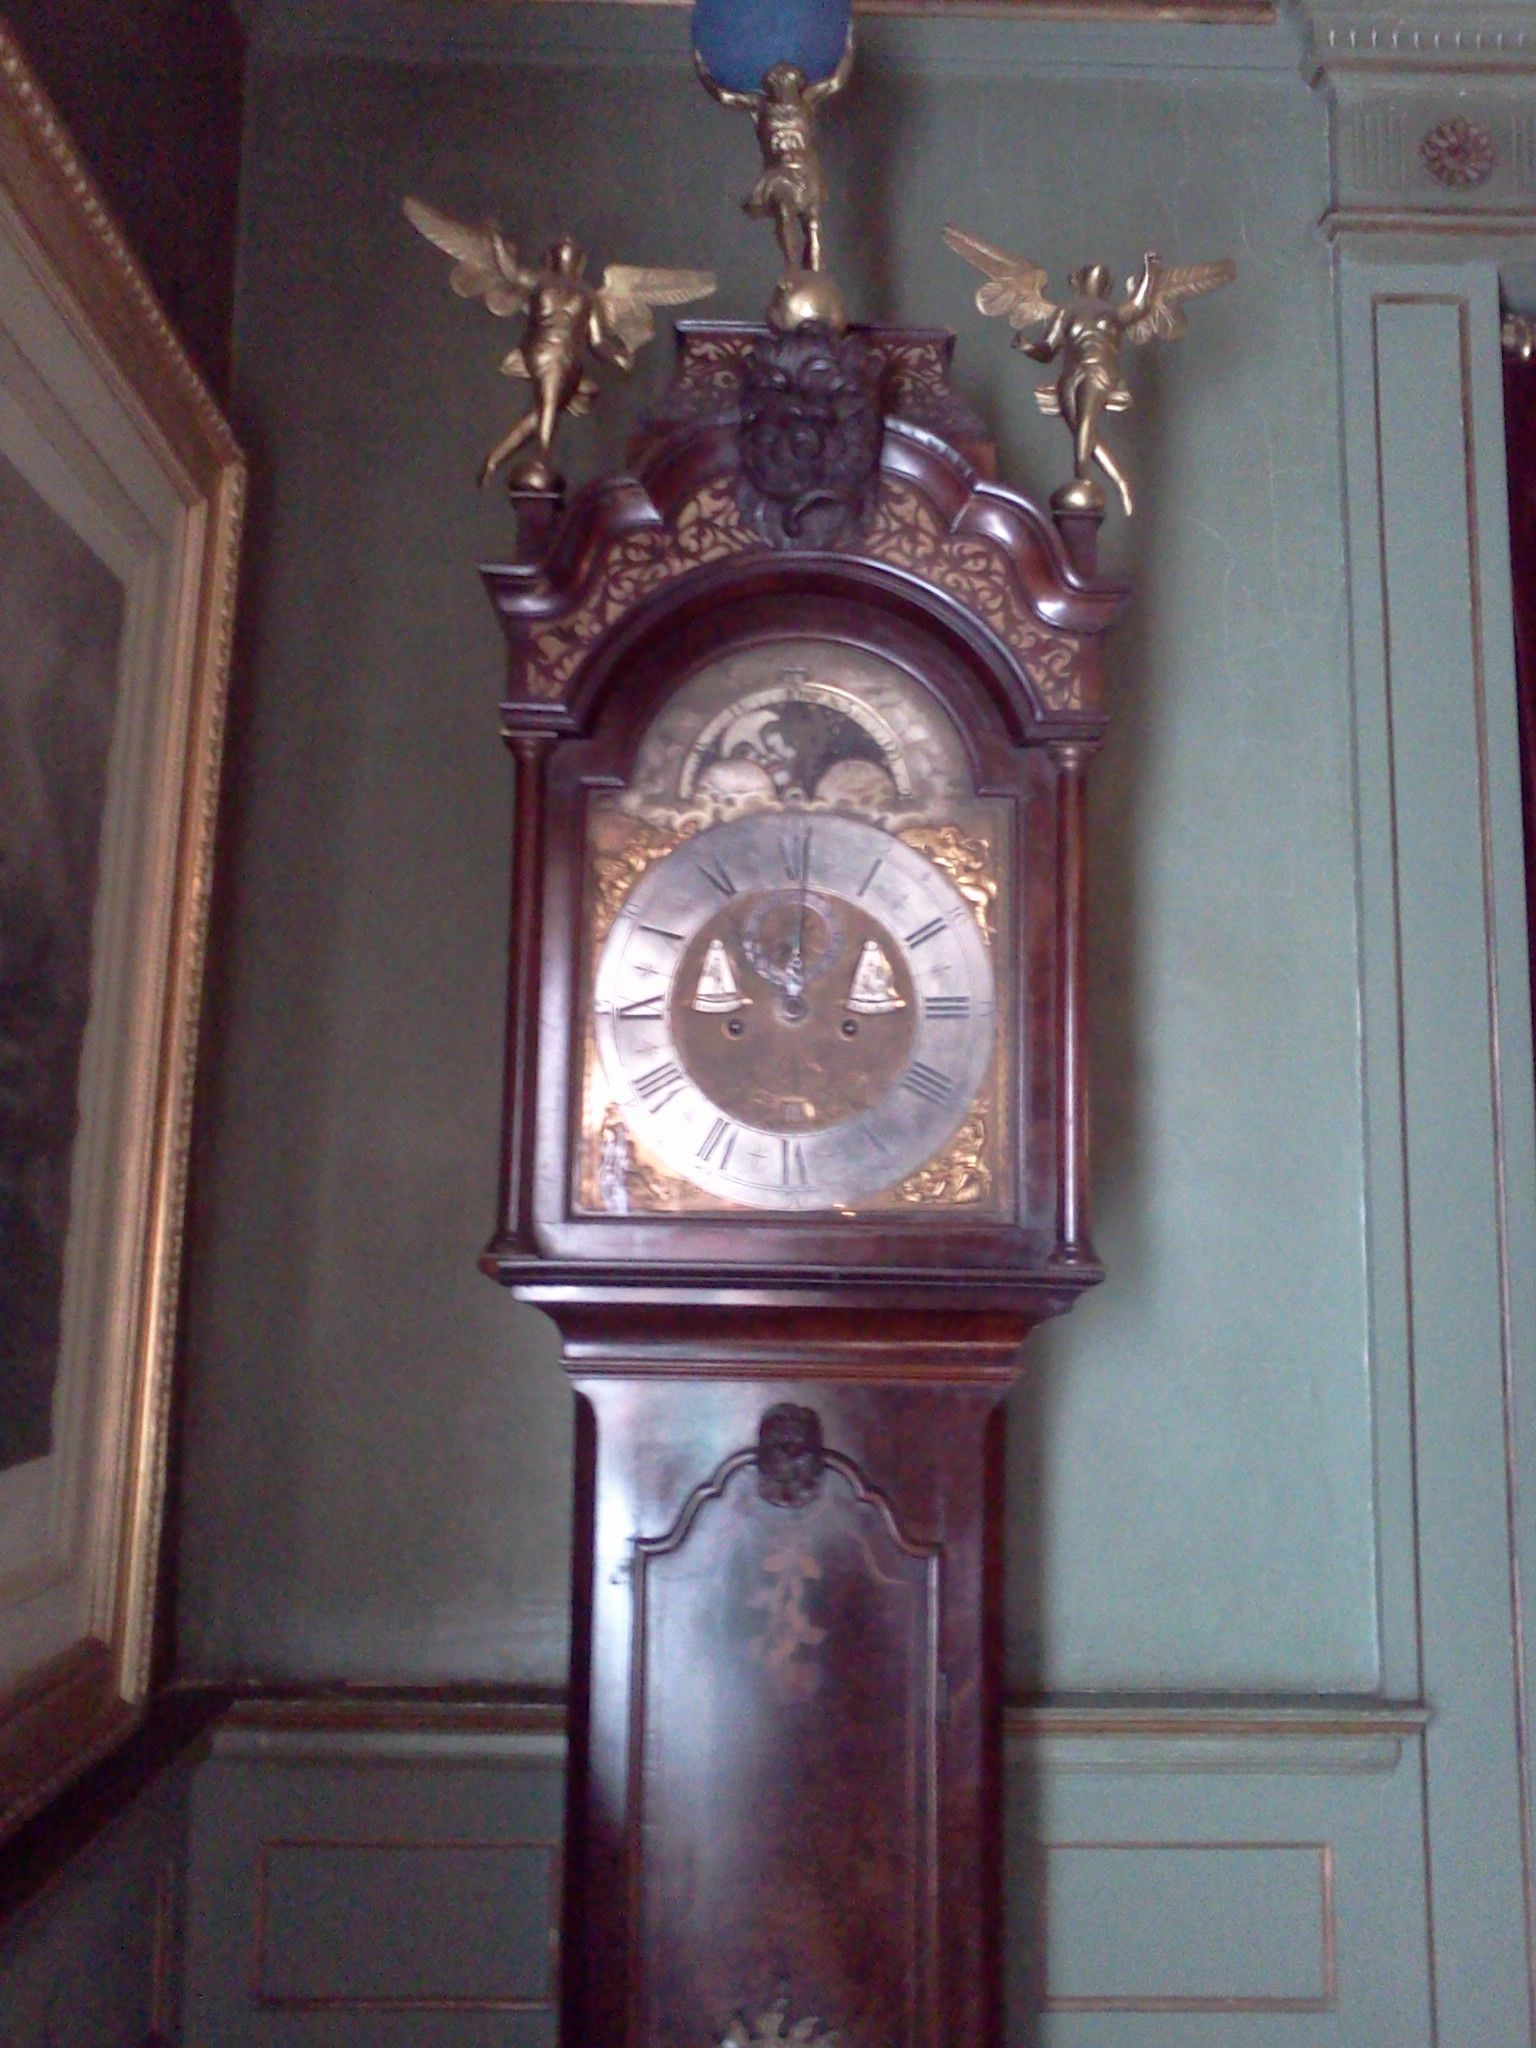 Beautiful Grandfather Clock In Dining Room Near Entrance To Den Was Given